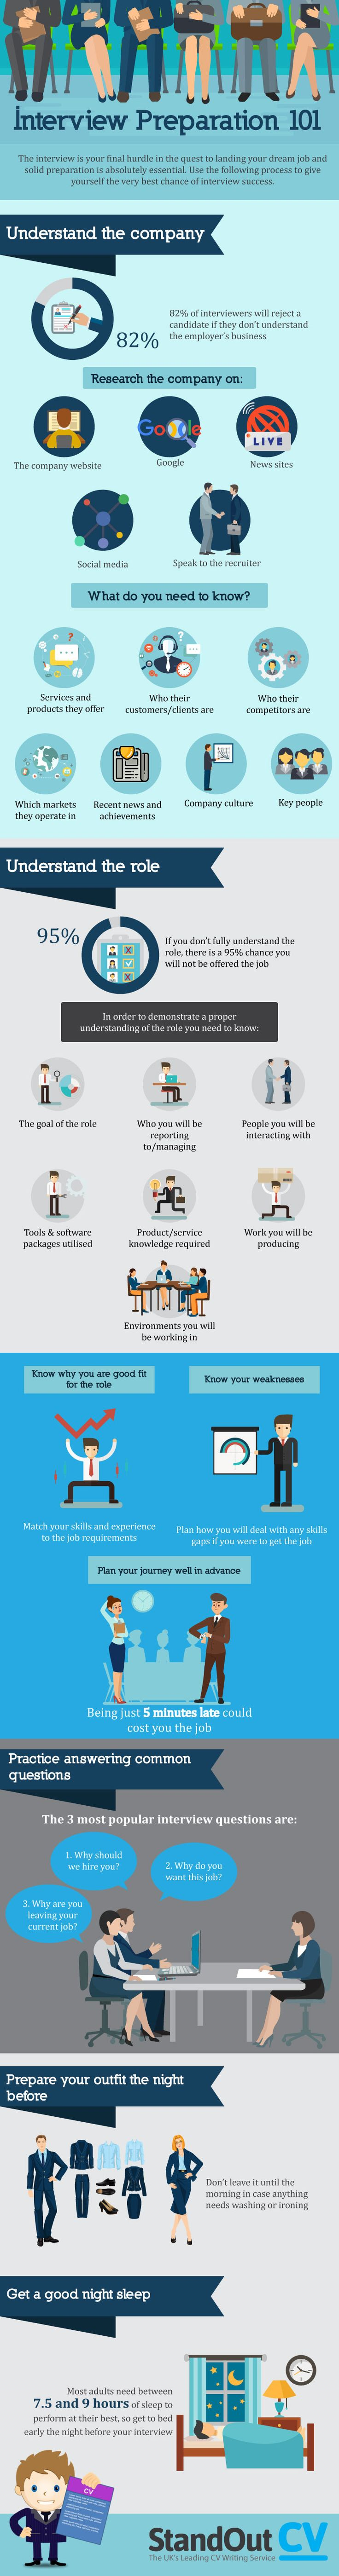 17 best ideas about interview preparation interview interview preparation 101 infographic